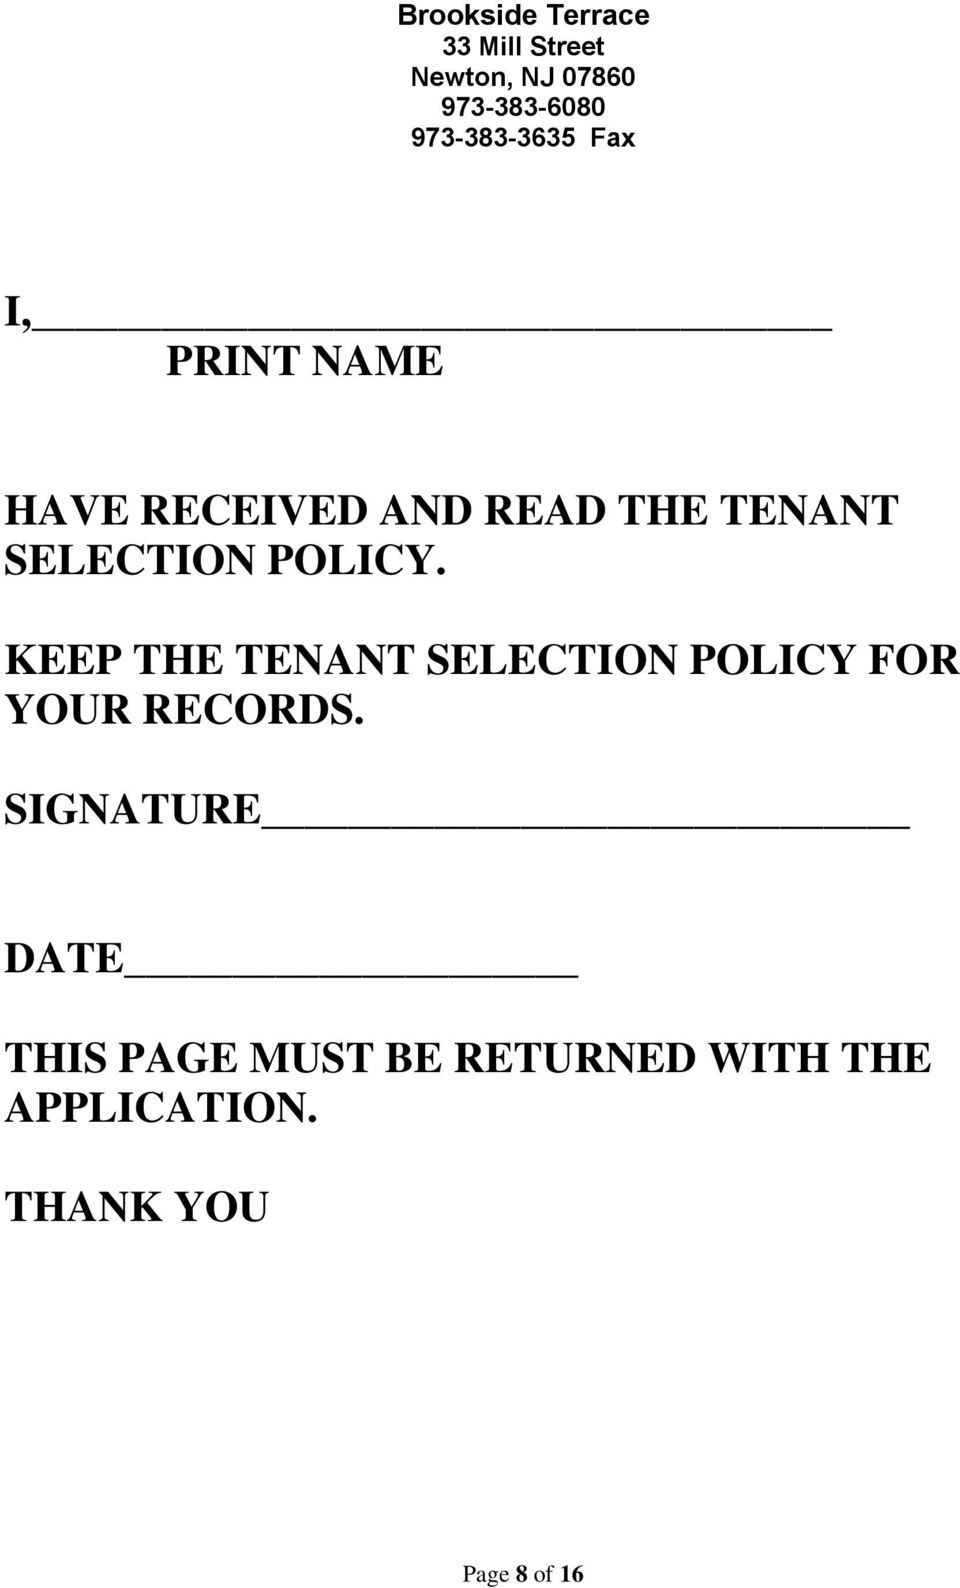 SELECTION POLICY. KEEP THE TENANT SELECTION POLICY FOR YOUR RECORDS.